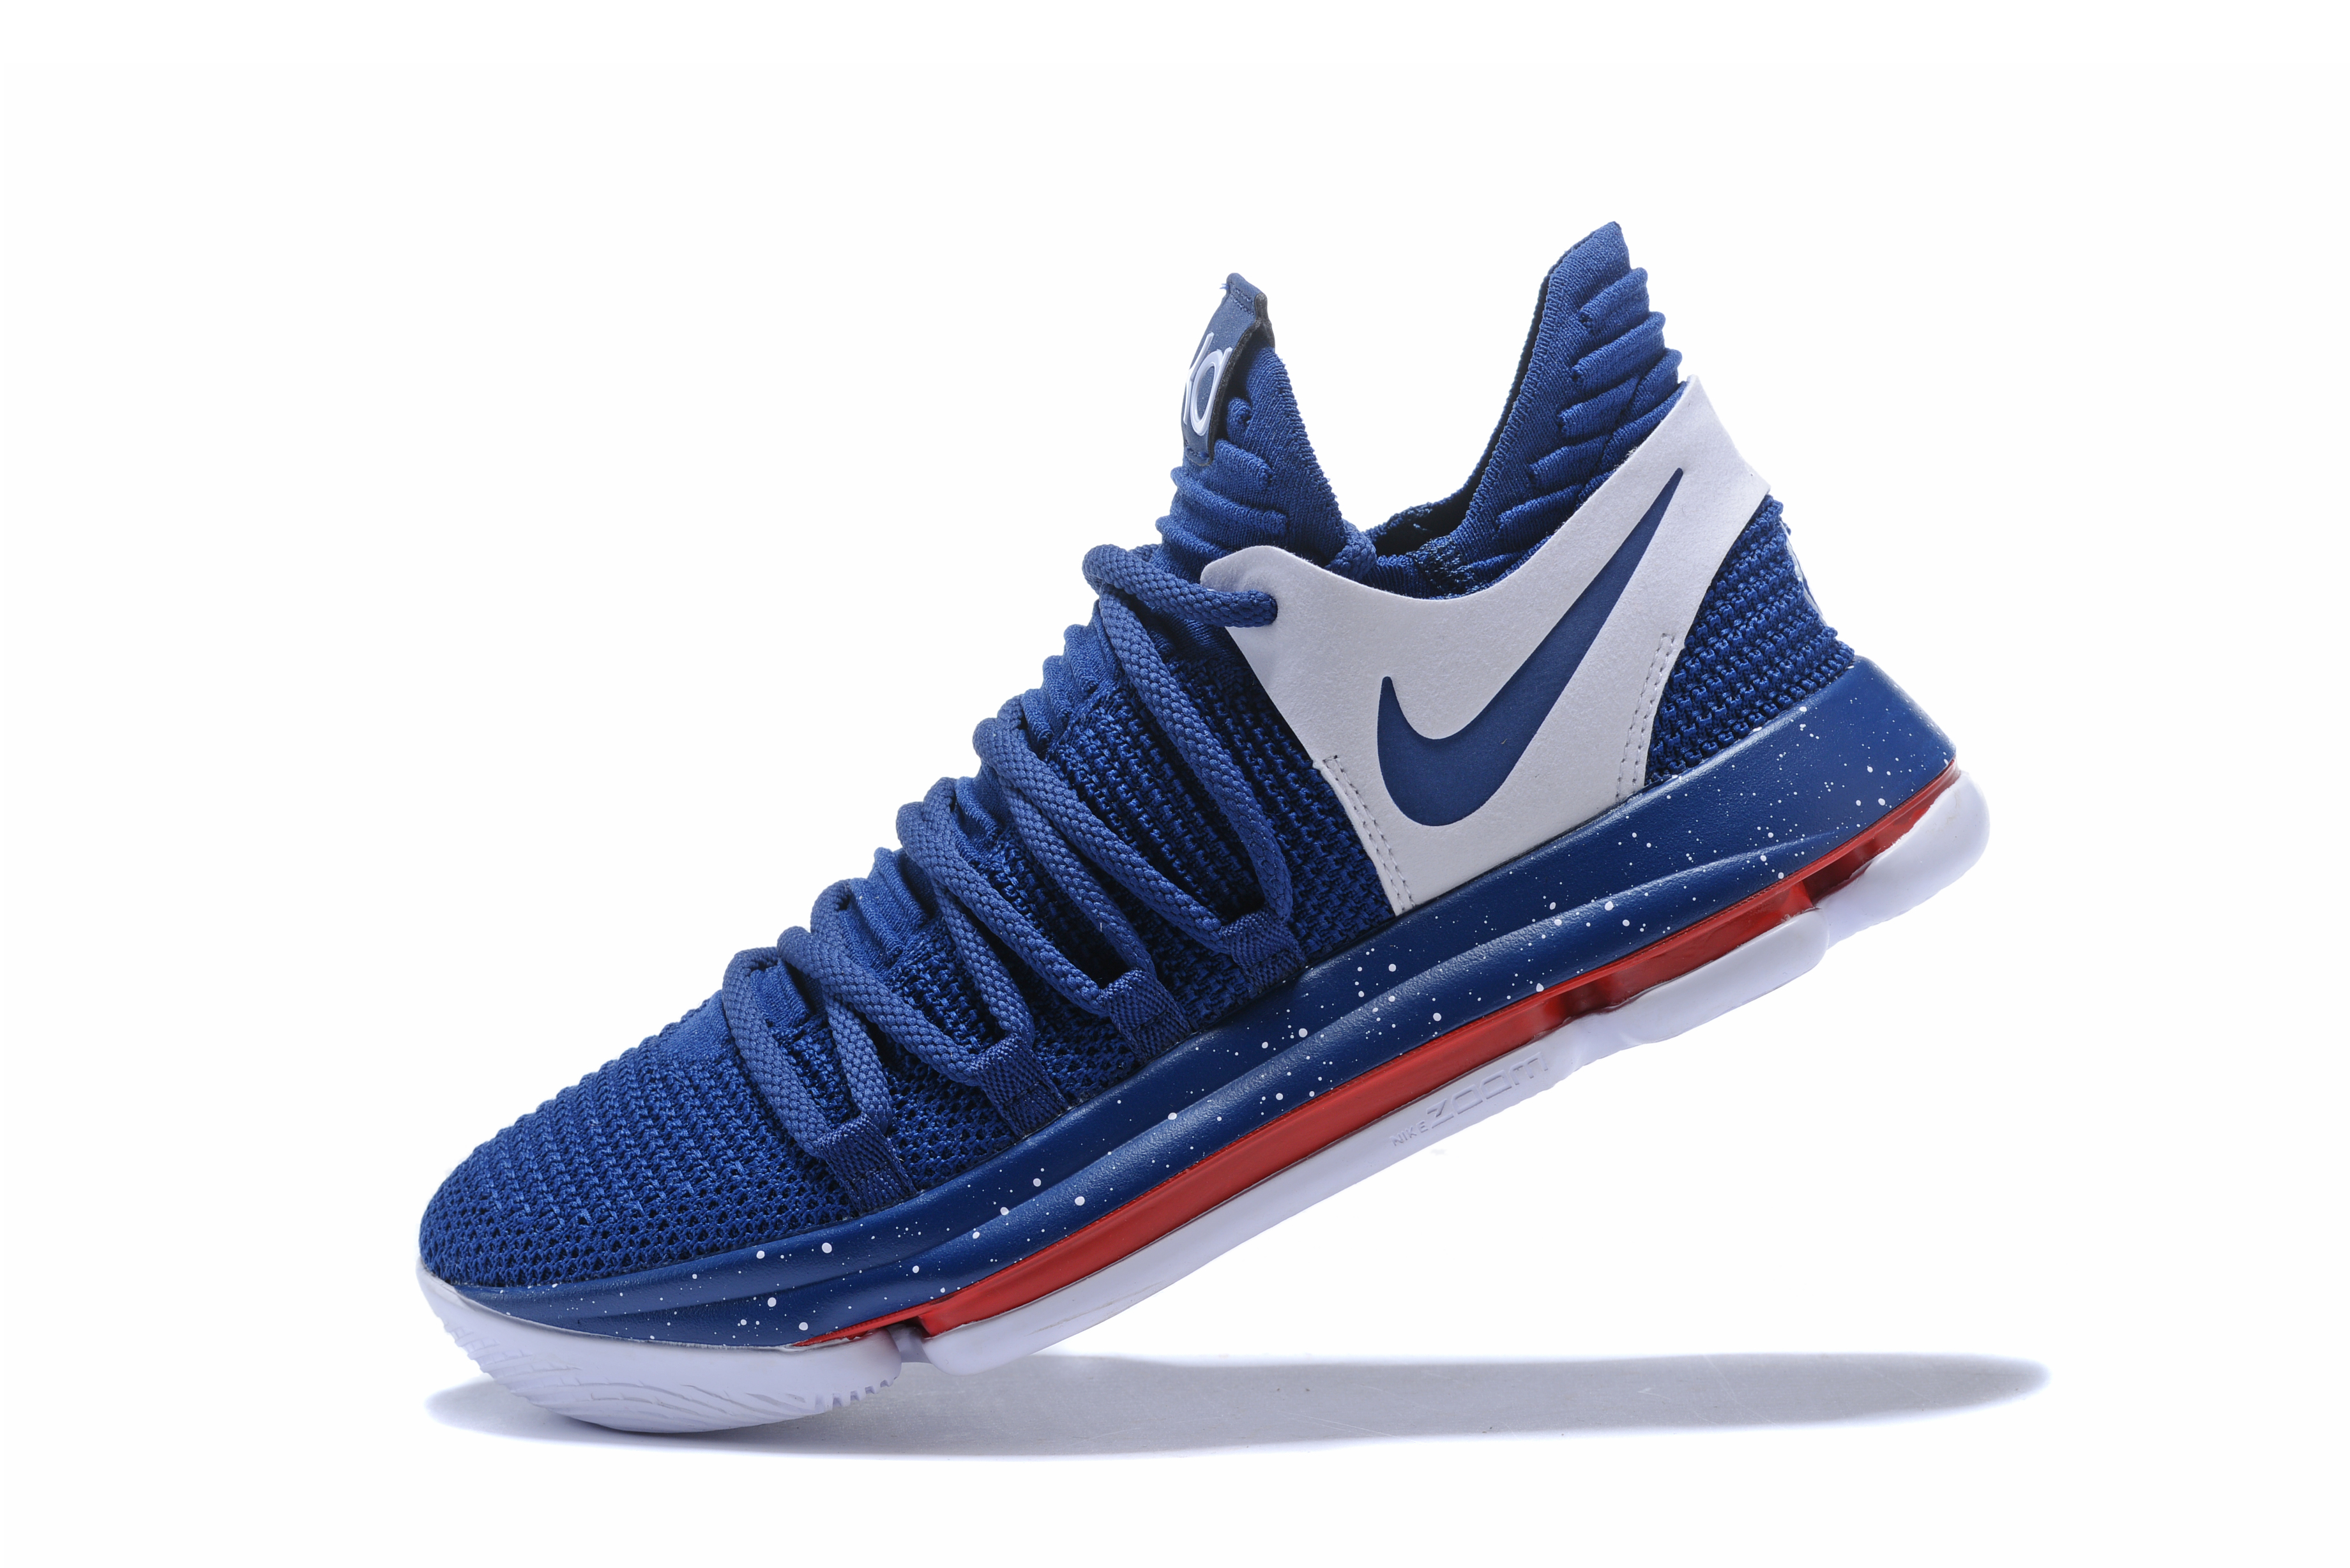 9131adcc6978a3 ... where to buy best nike kd 10 navy blue white red 20219 20262